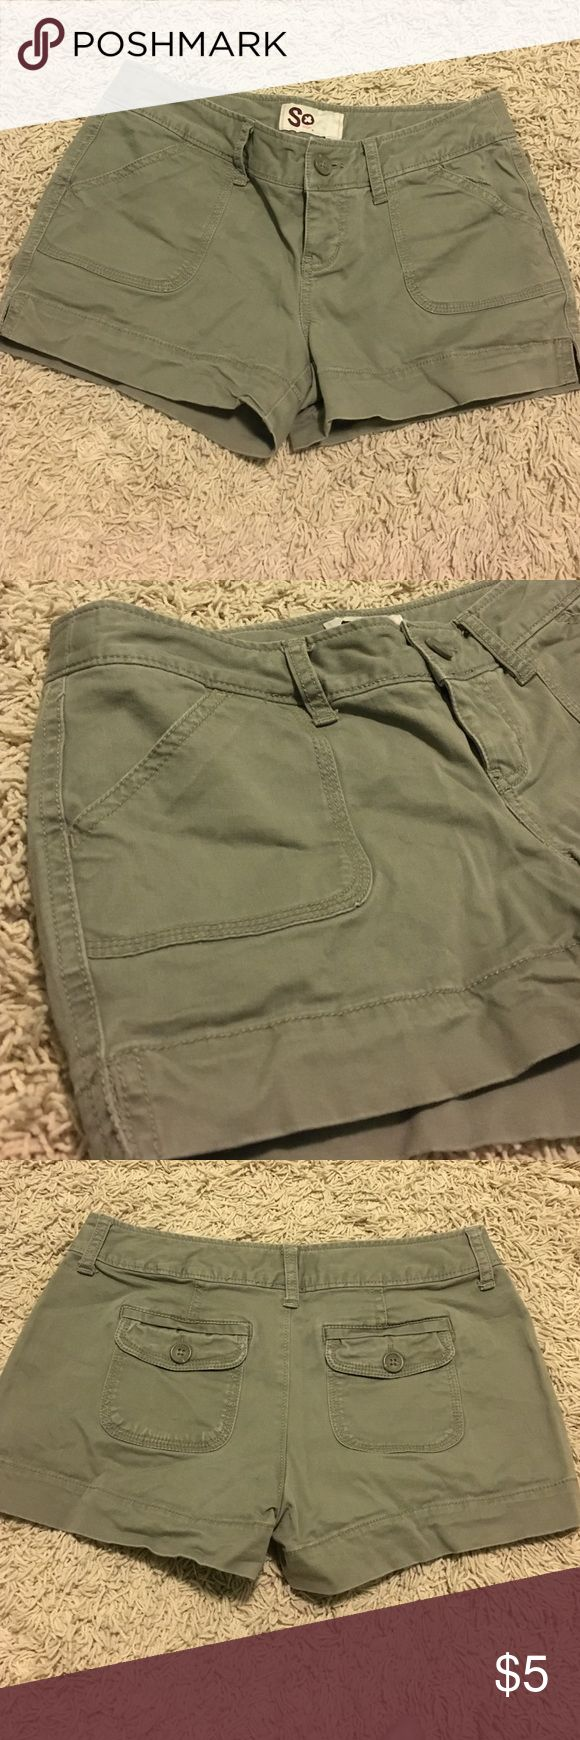 Olive green cargo shorts These olive green cargo short shorts are simple and great for everyday attire in the warmer seasons! SO Shorts Cargos